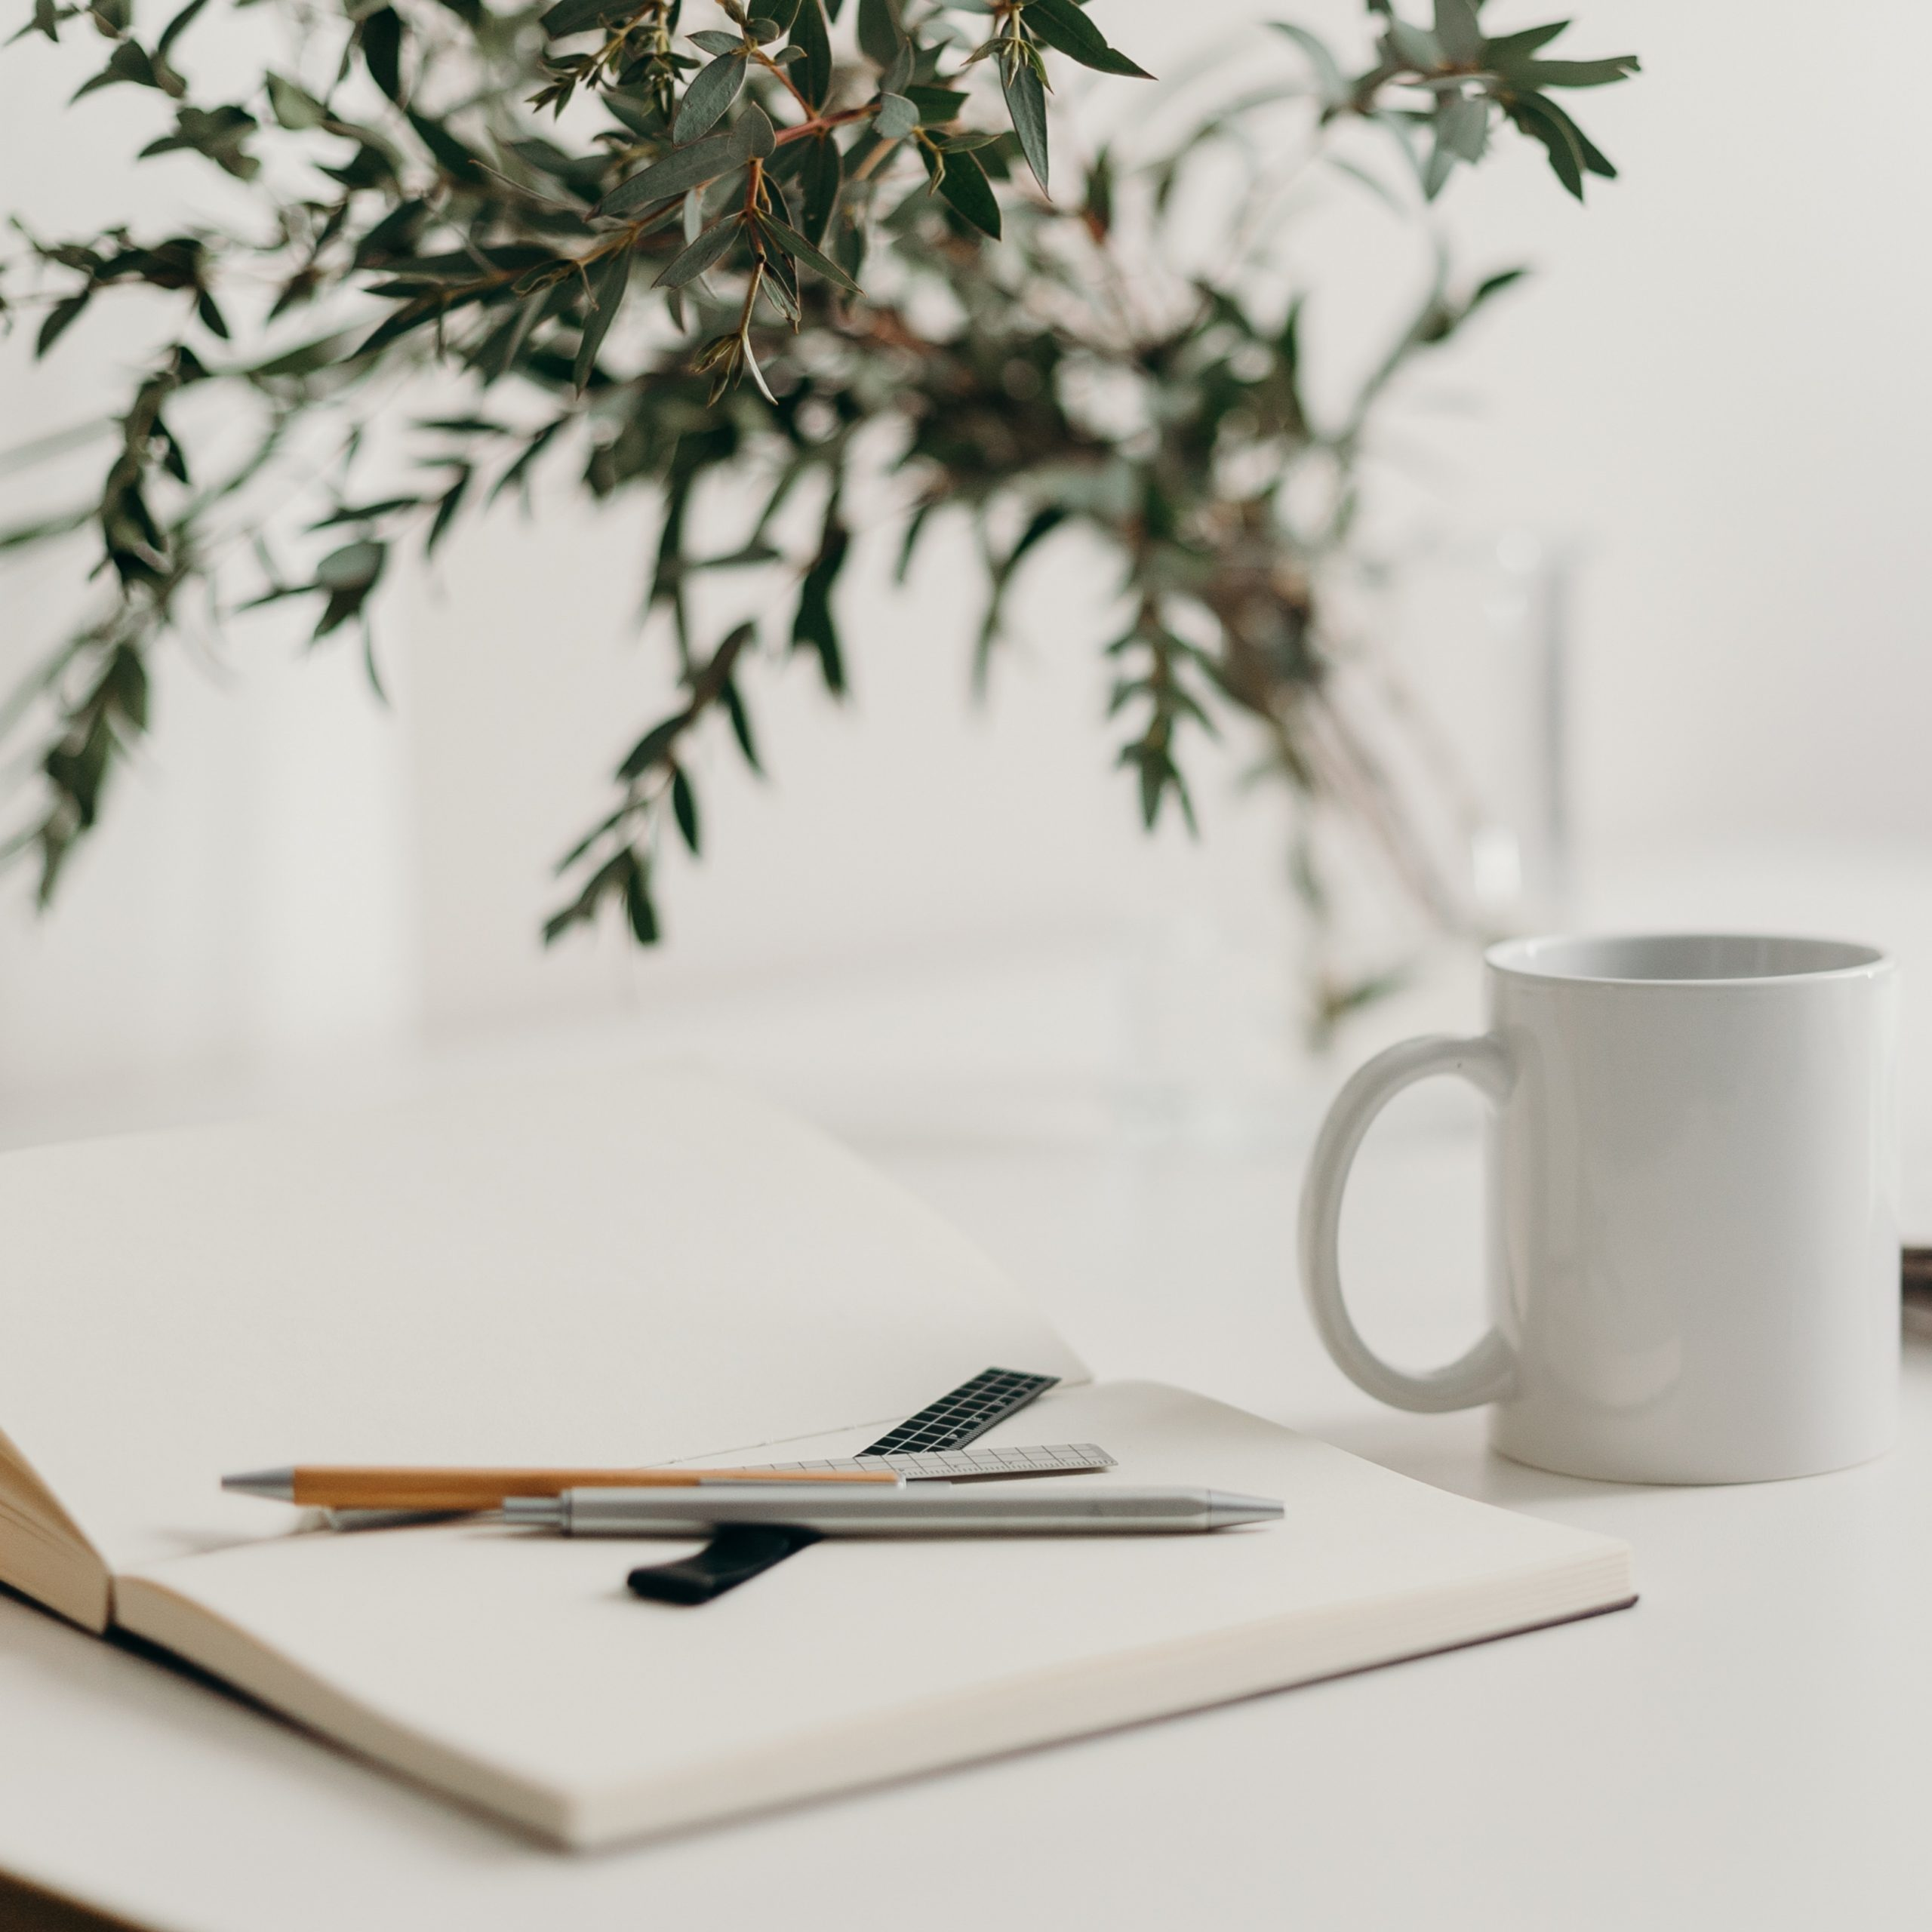 Note book, pencil, mug with branch in background